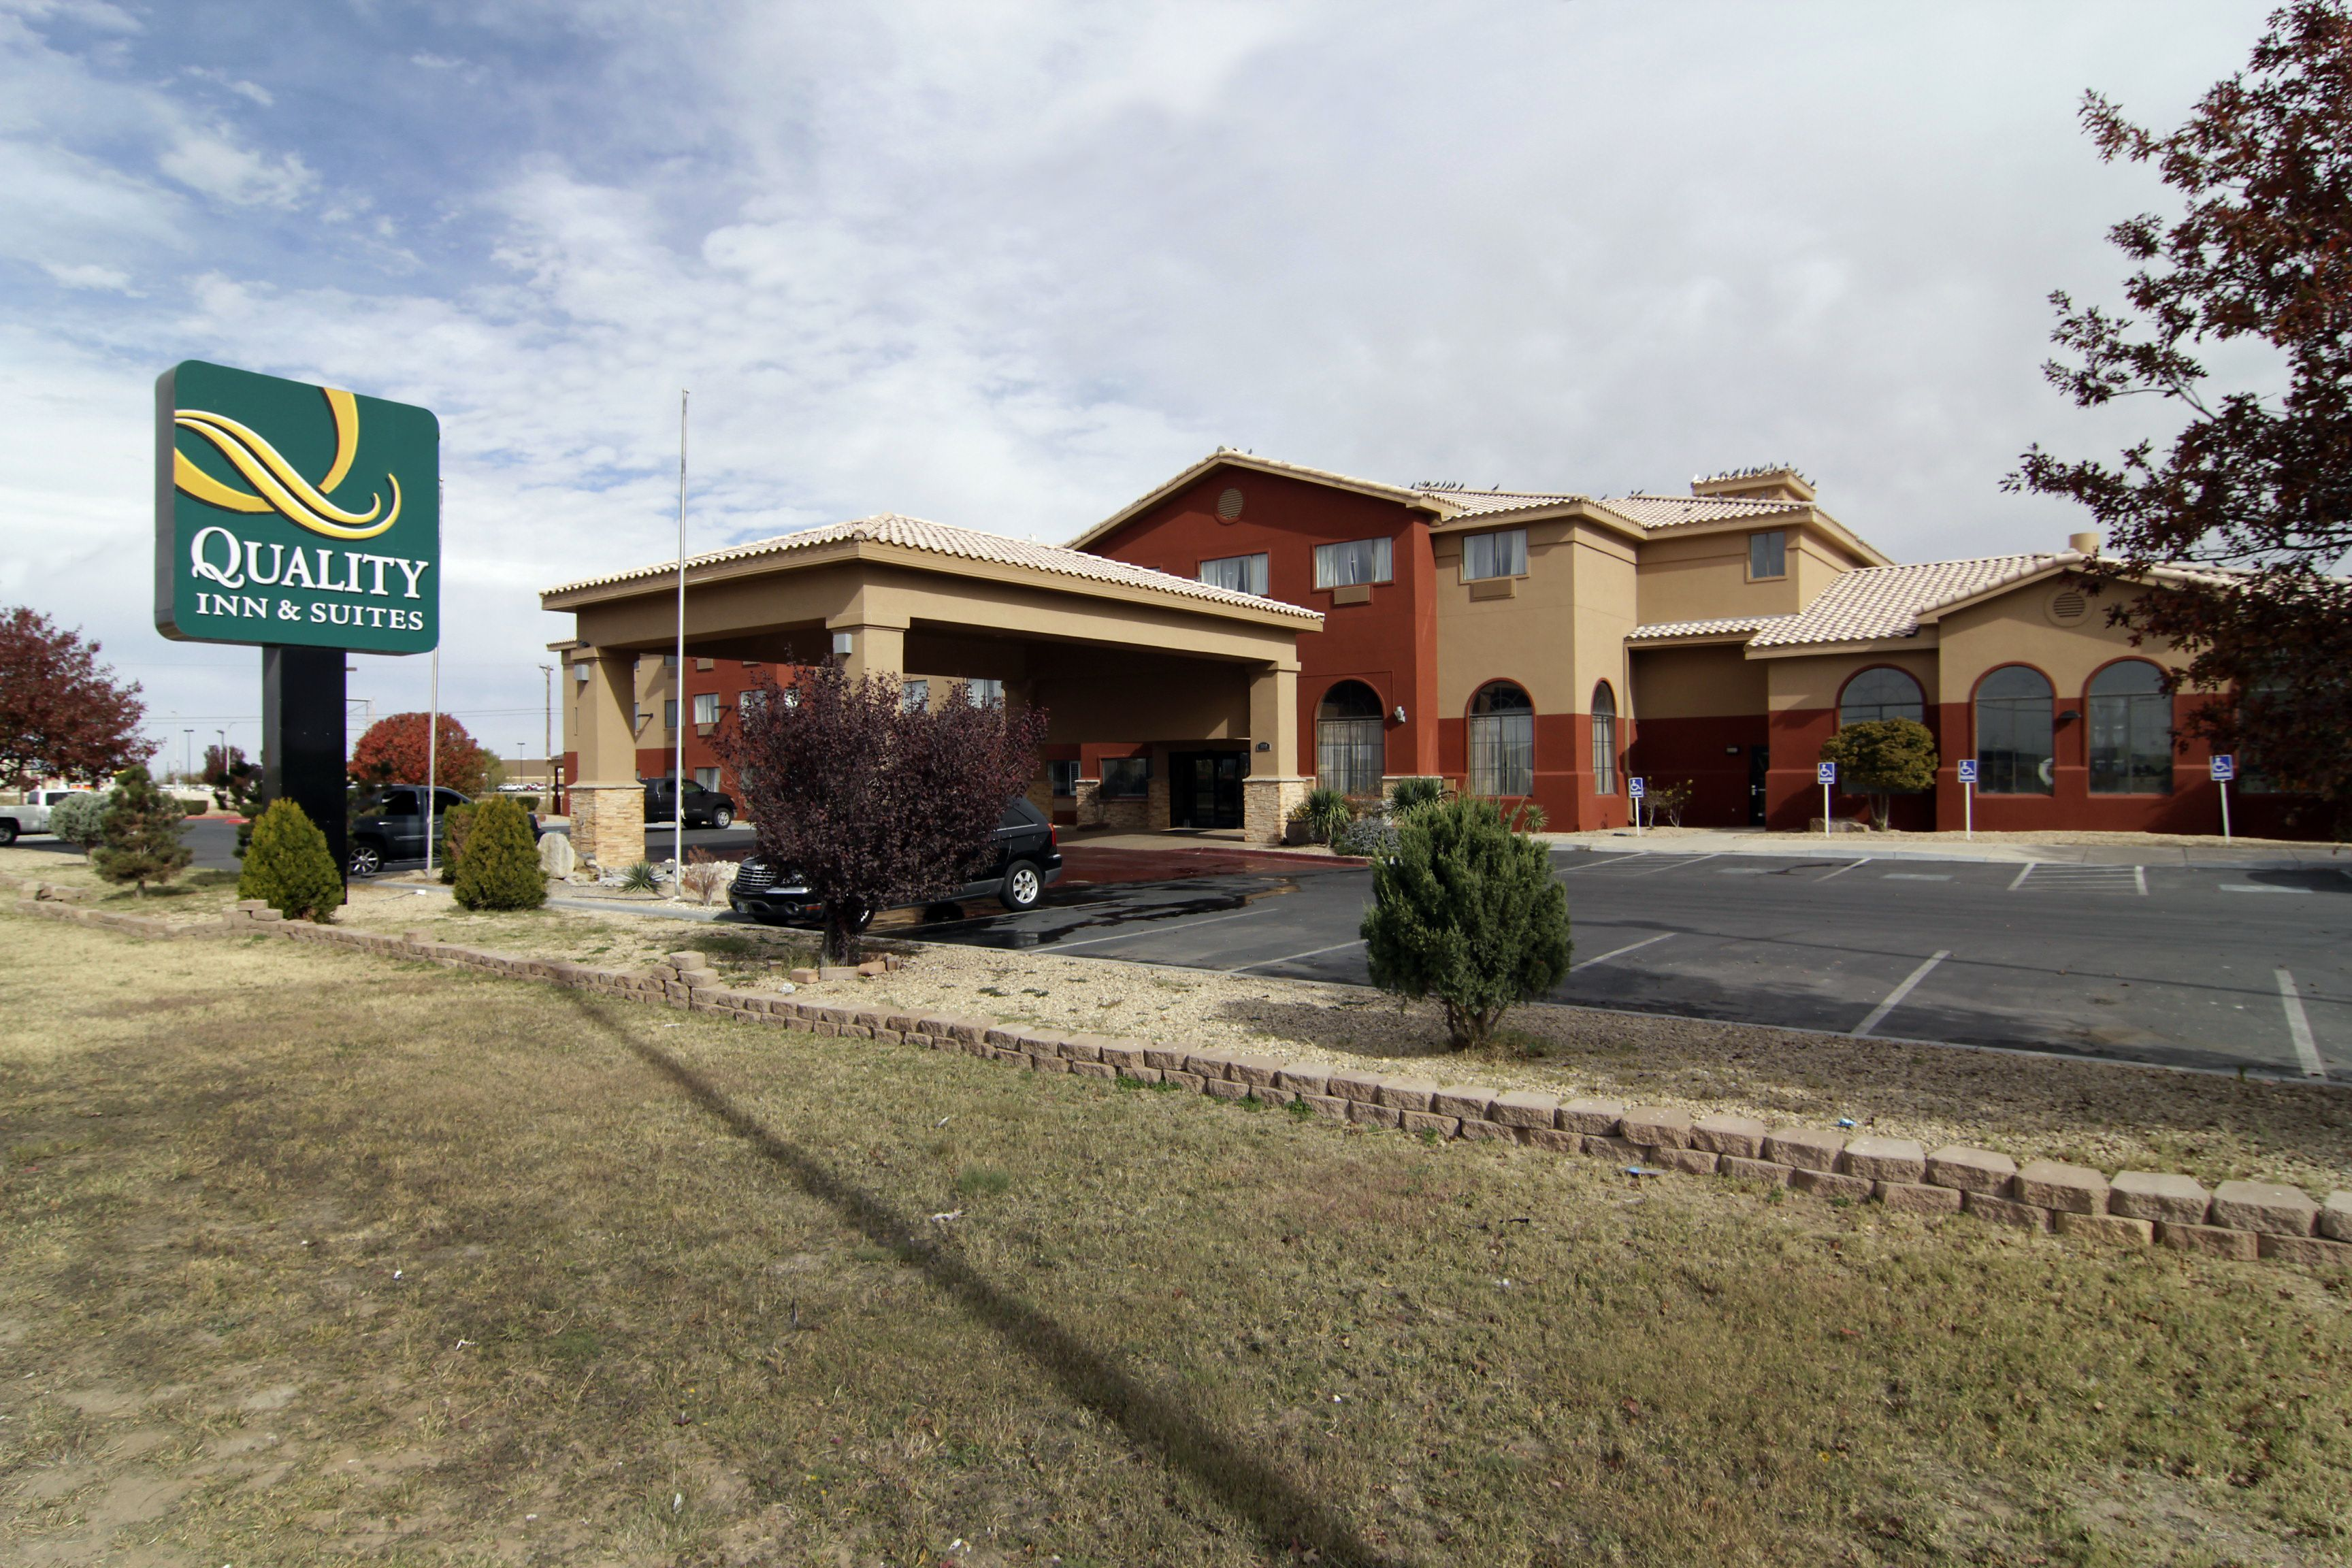 Welcome To Our Outstanding Quality Inn And Suites Hobbs New Mexico Hotel Located Near The University Mexico Hotels Hobbs New Mexico University Of The Southwest